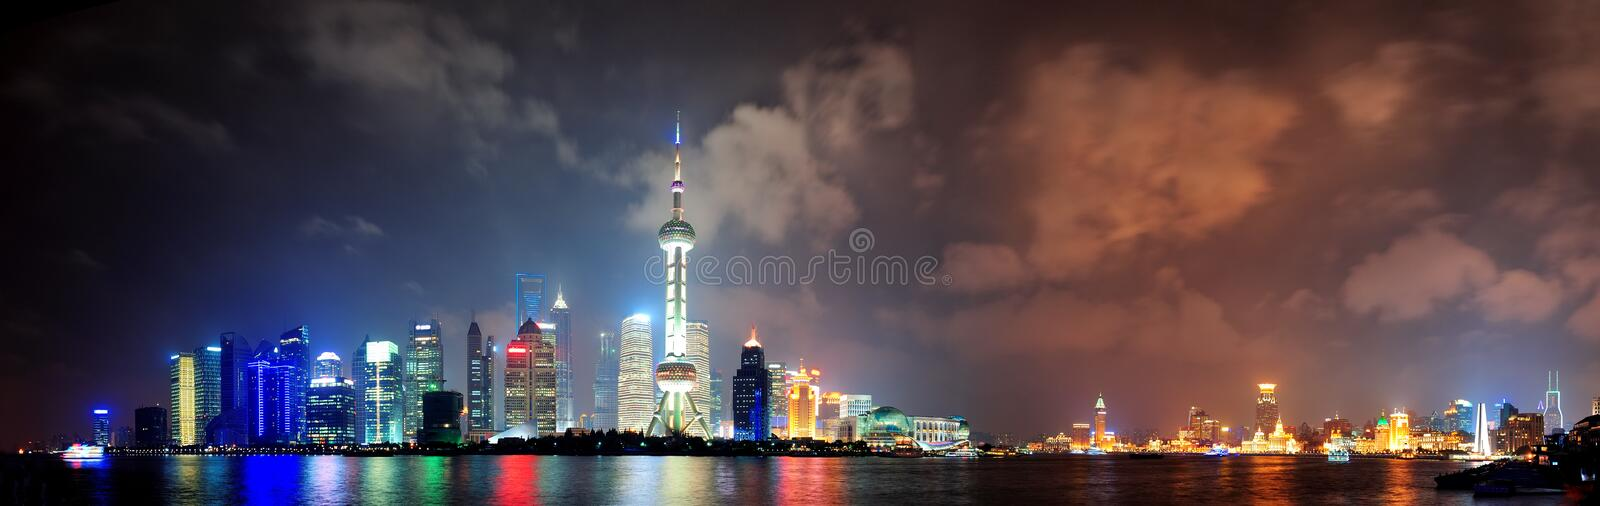 Download Shanghai skyline at night stock image. Image of cityscape - 27042503